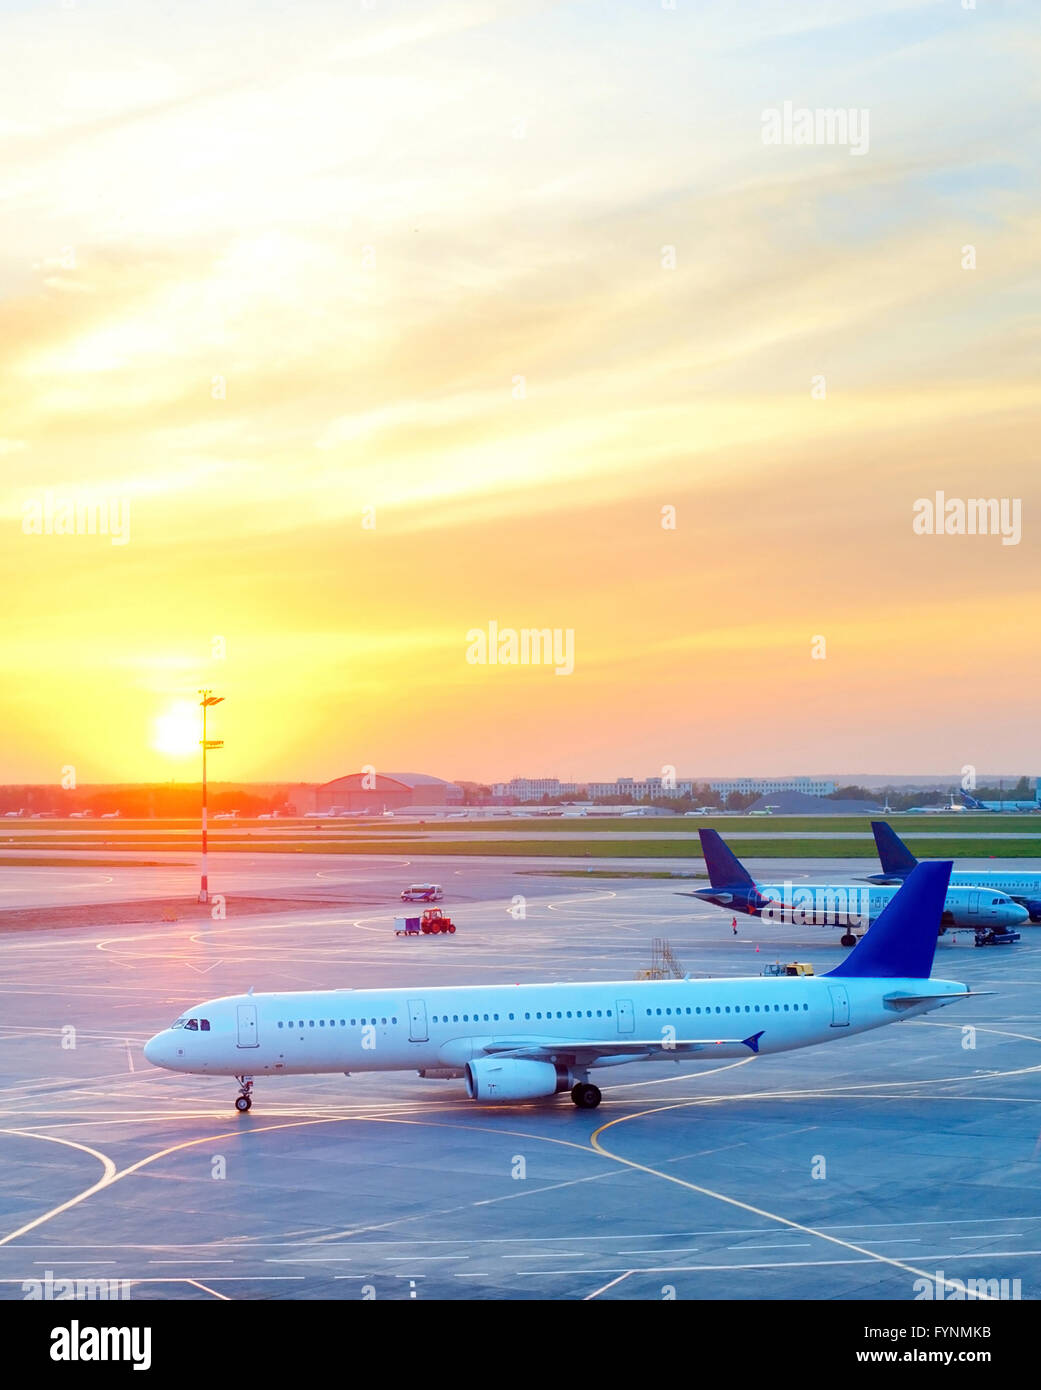 Planes at airport in the beautiful sunset - Stock Image